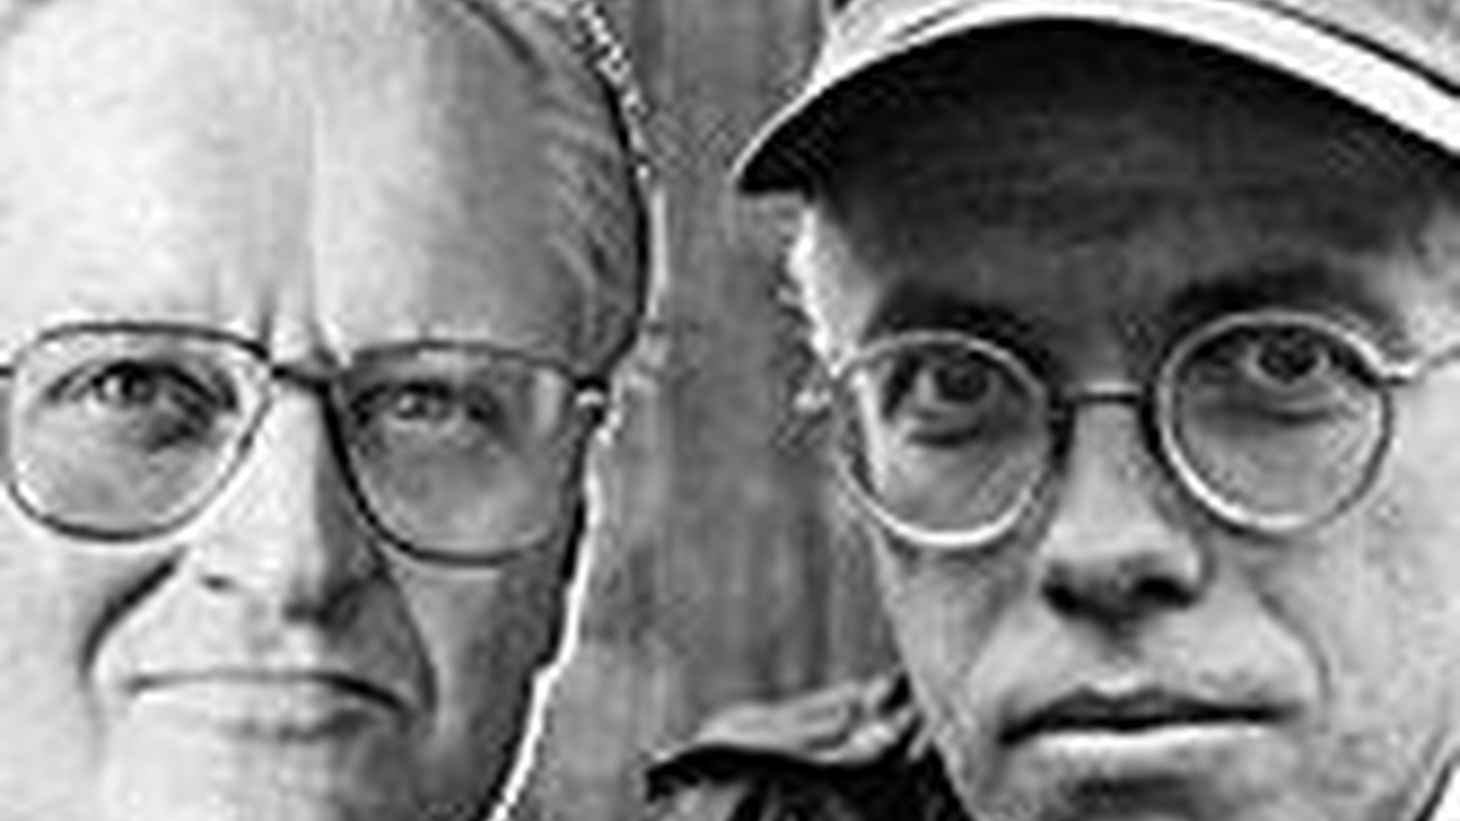 Haunted House (Ashbery); Prose Poems (Padgett) (both from Black Square Editions)   The haunted, lonely prose-poetry of Pierre Reverdy has attracted many translators. Two of America's most extraordinary poets read and discuss their translations...